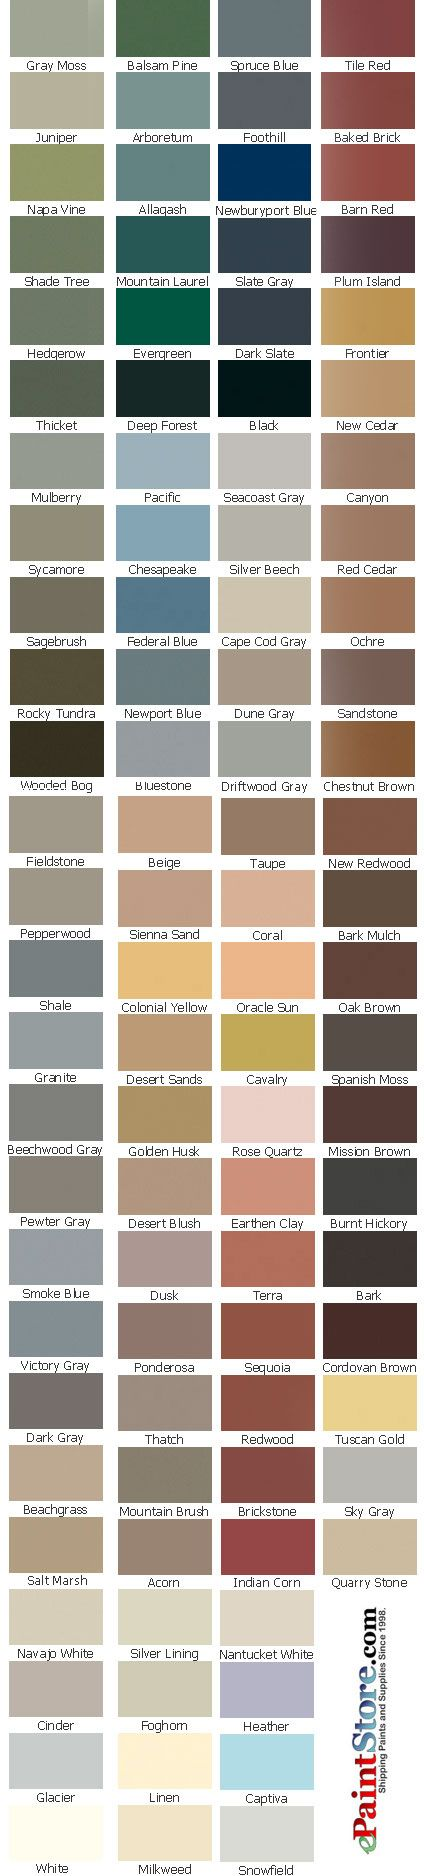 Exterior stain colors others beautiful home design - Cabot interior stain color chart ...